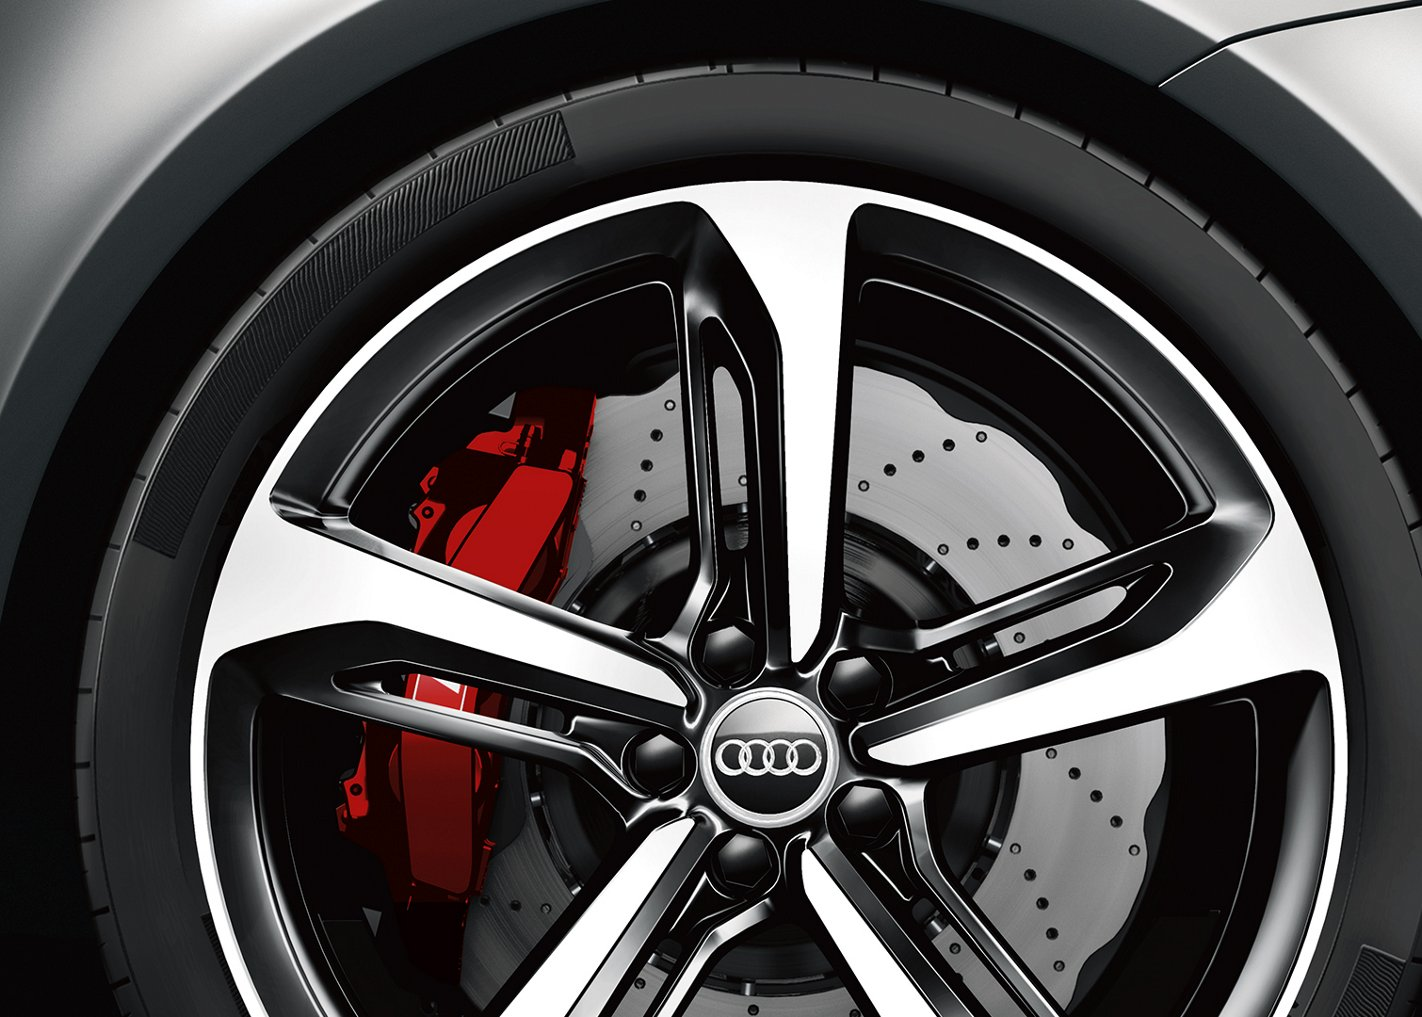 New Audi RS 7 Exterior image 2